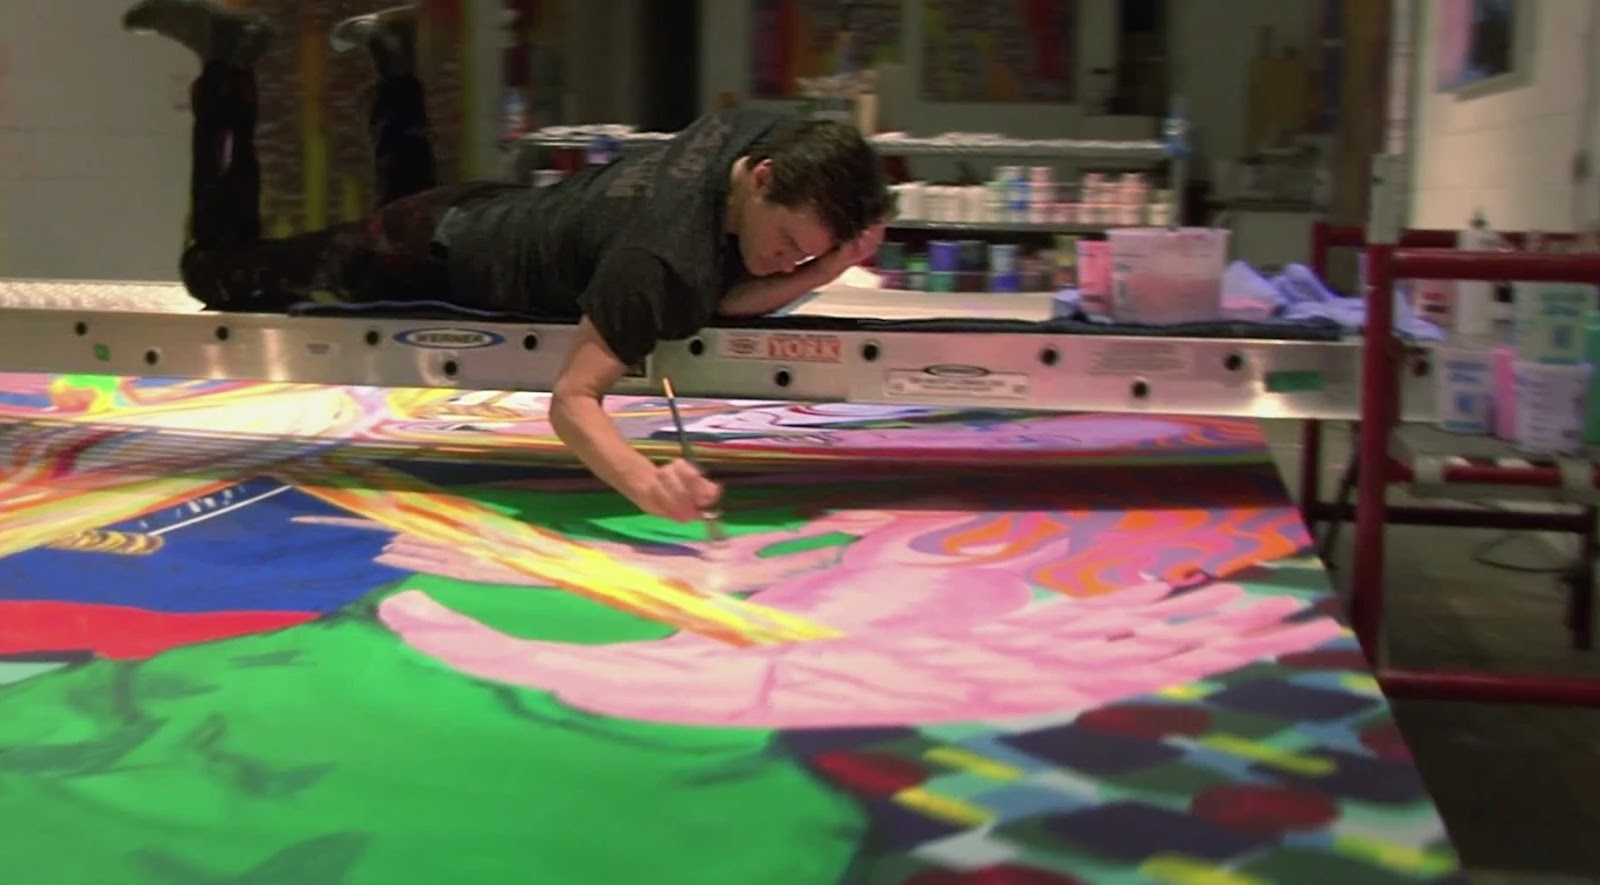 Jim Carrey's famous actor's Other Side As a Painter